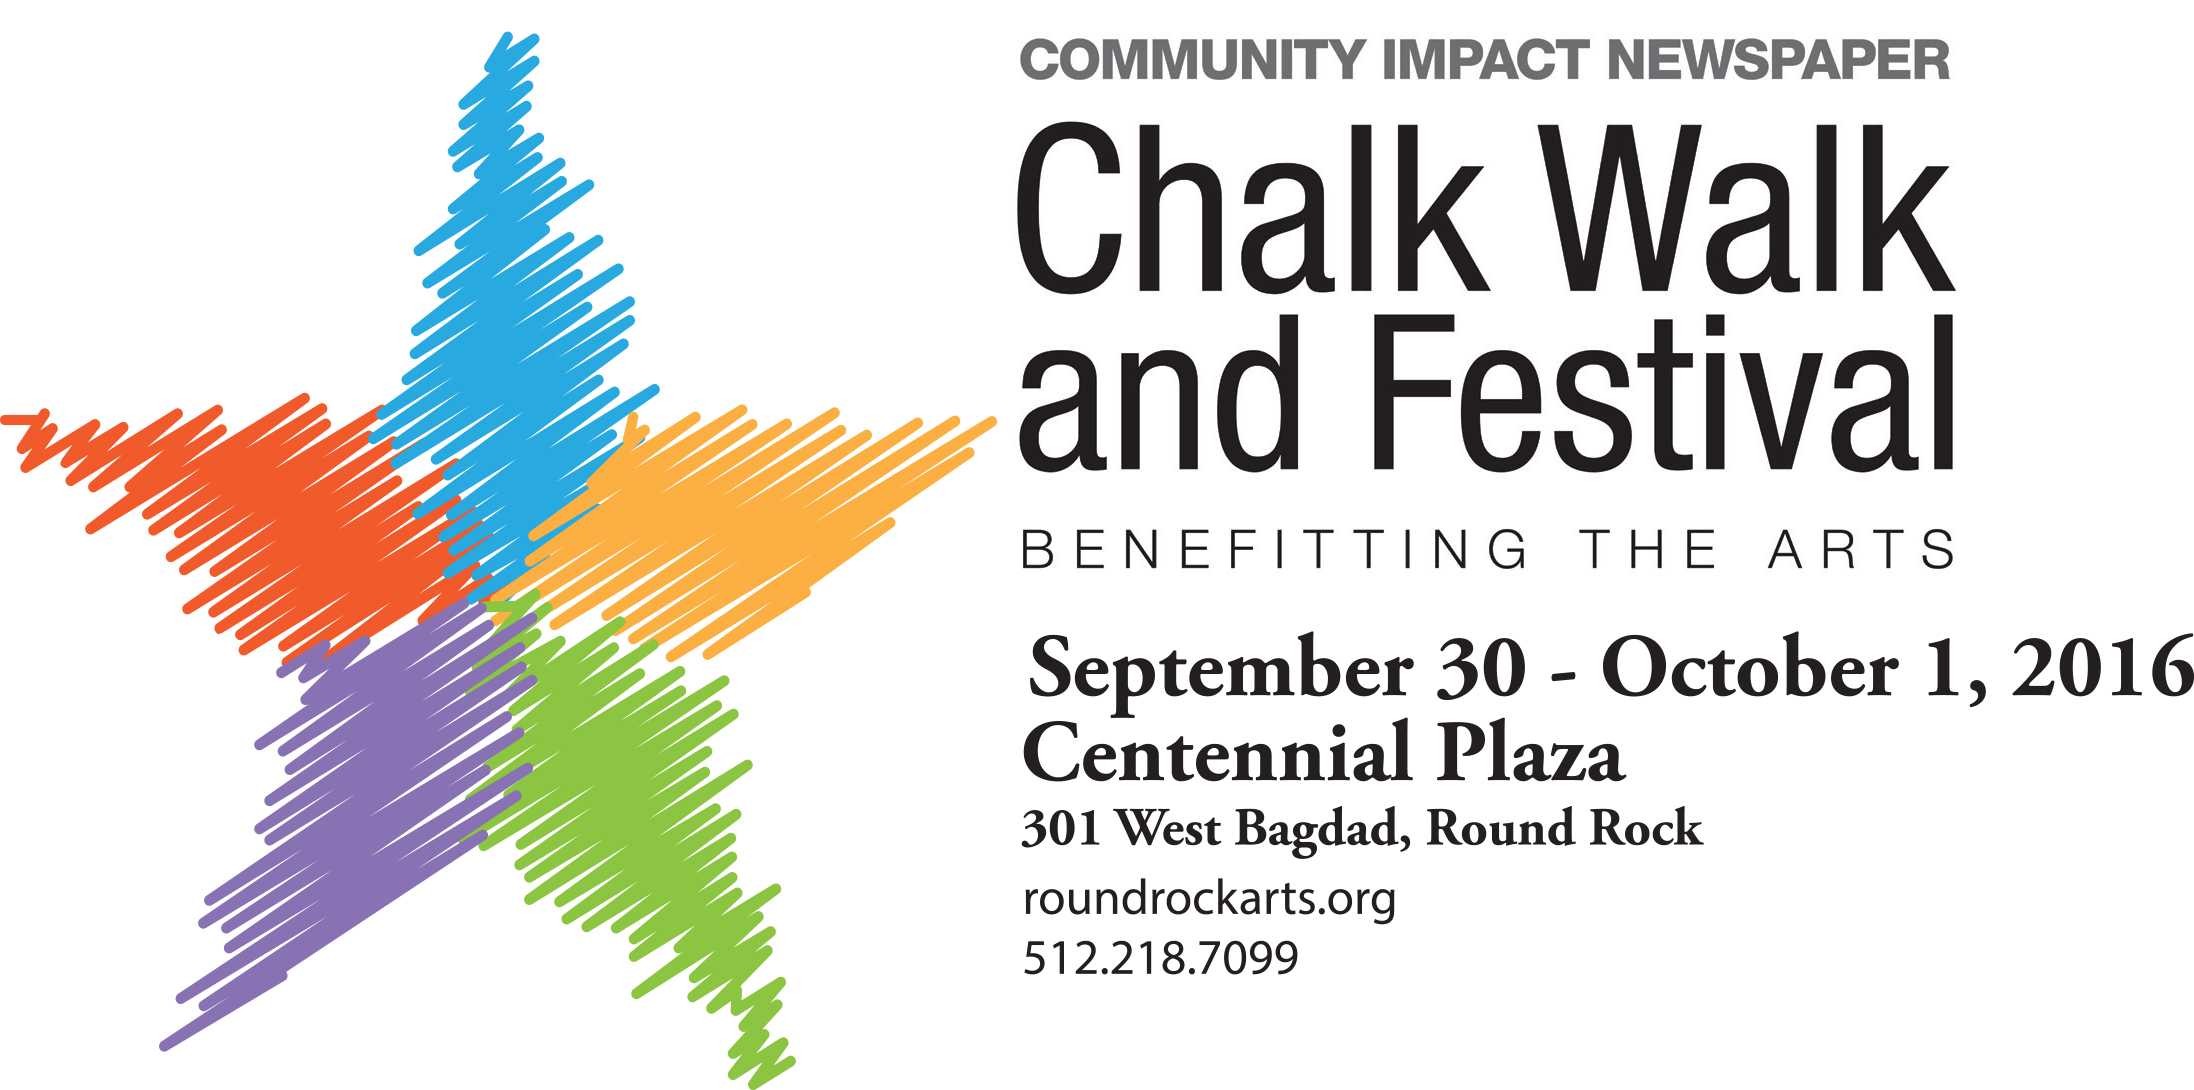 Chalk Walk 2016 with Community Impact